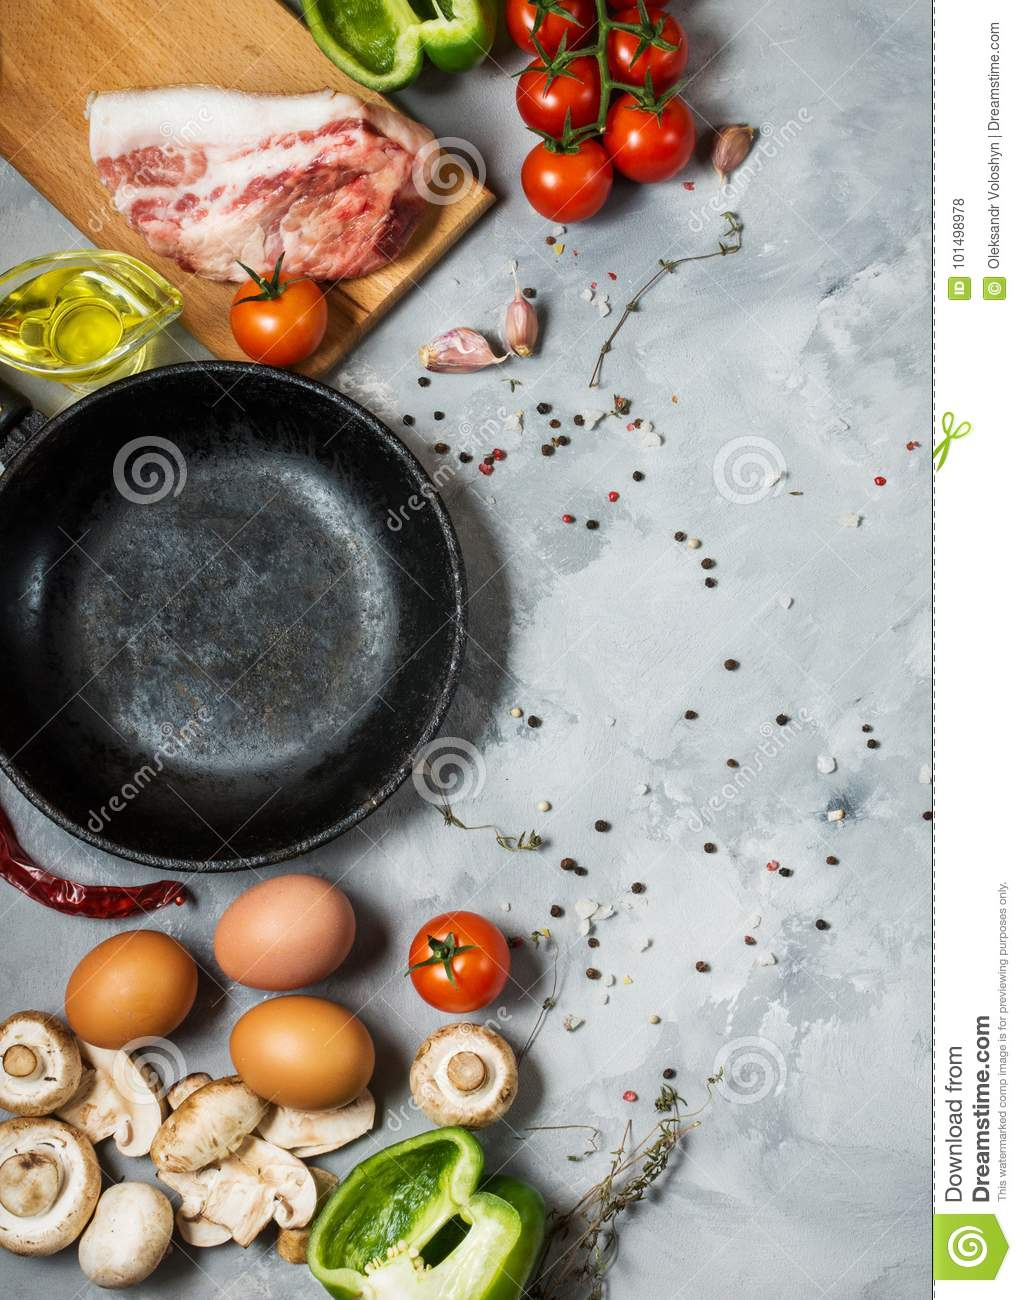 Products for breakfast, eggs, bacon, vegetables, herbs on stone background, top view with copy space.